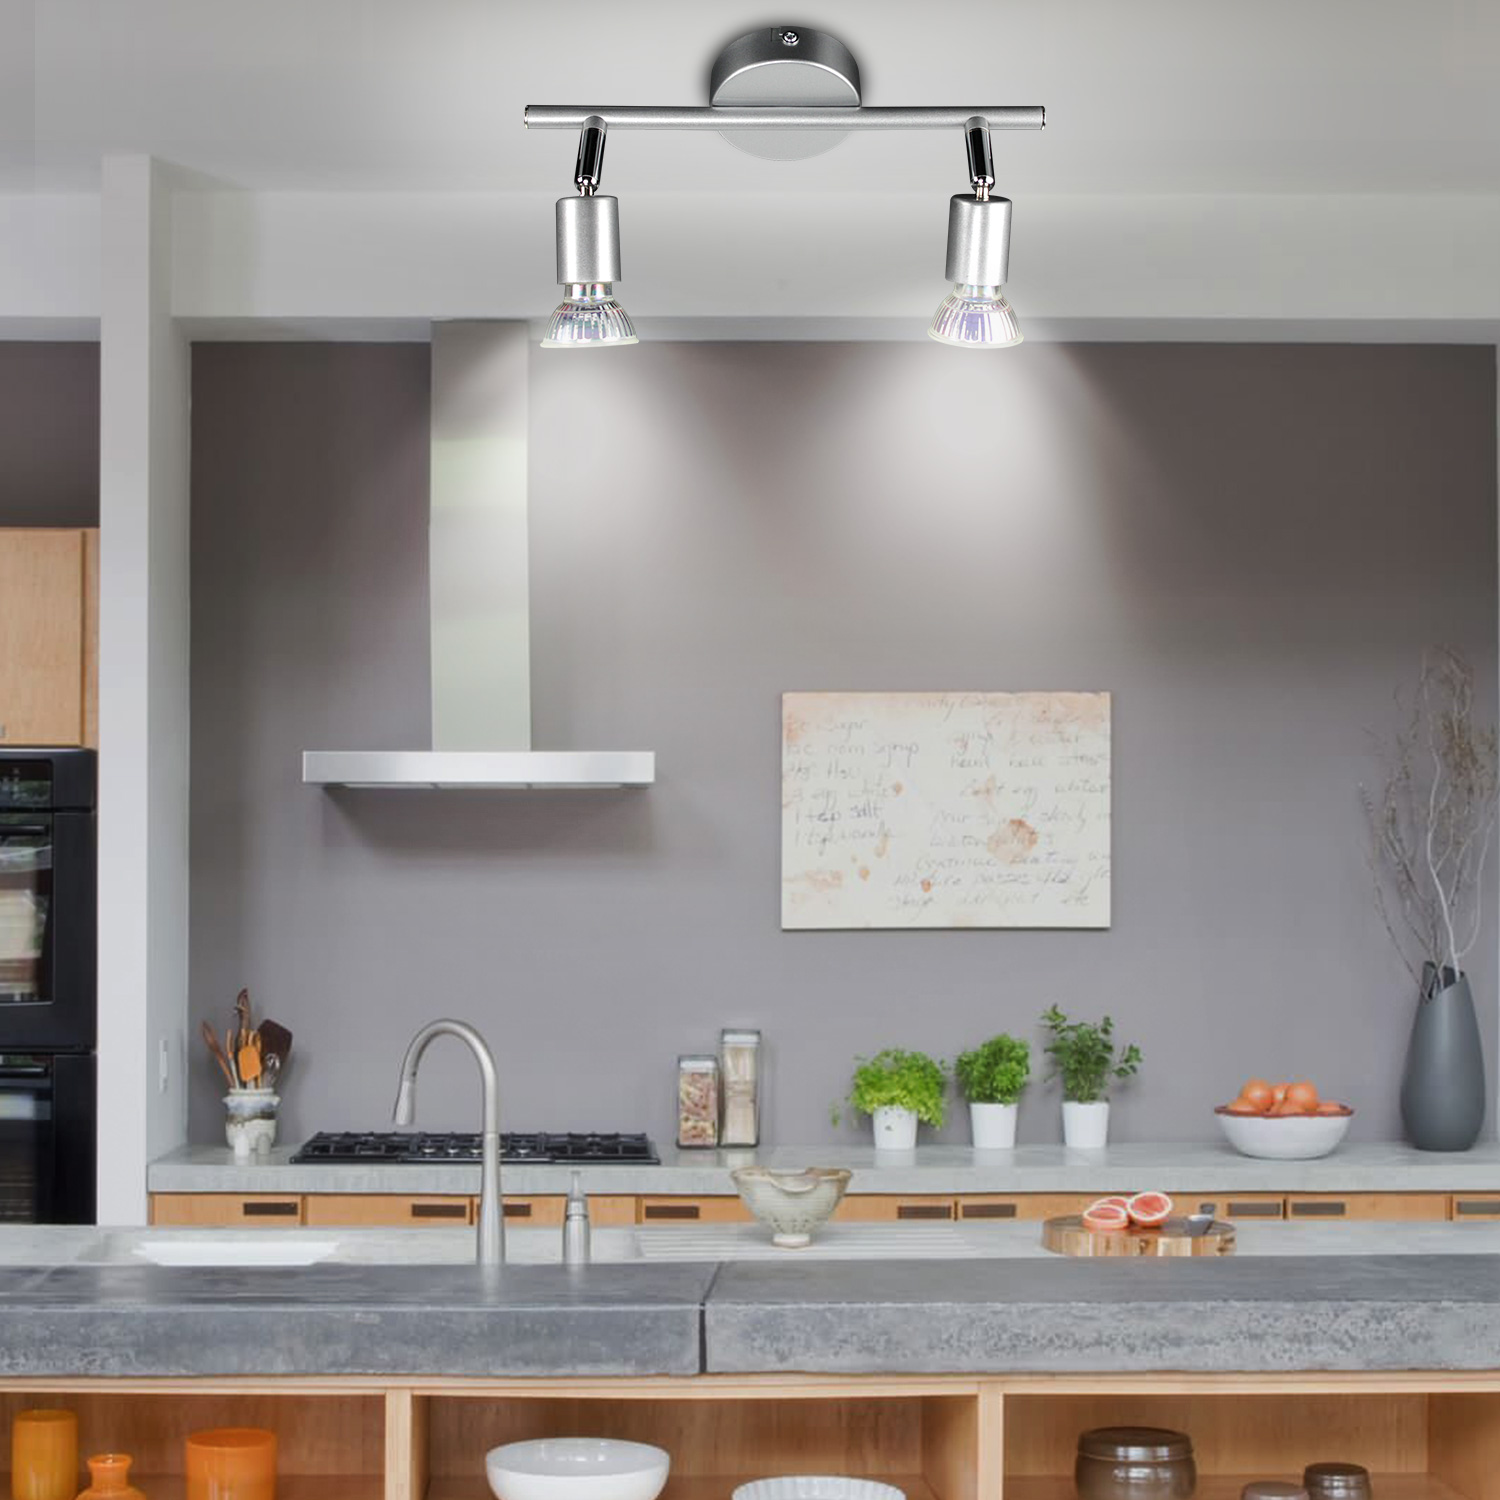 Great Ways For Lighting A Kitchen: Modern 2 3 Way Adjustable GU10 LED Kitchen Ceiling Lights